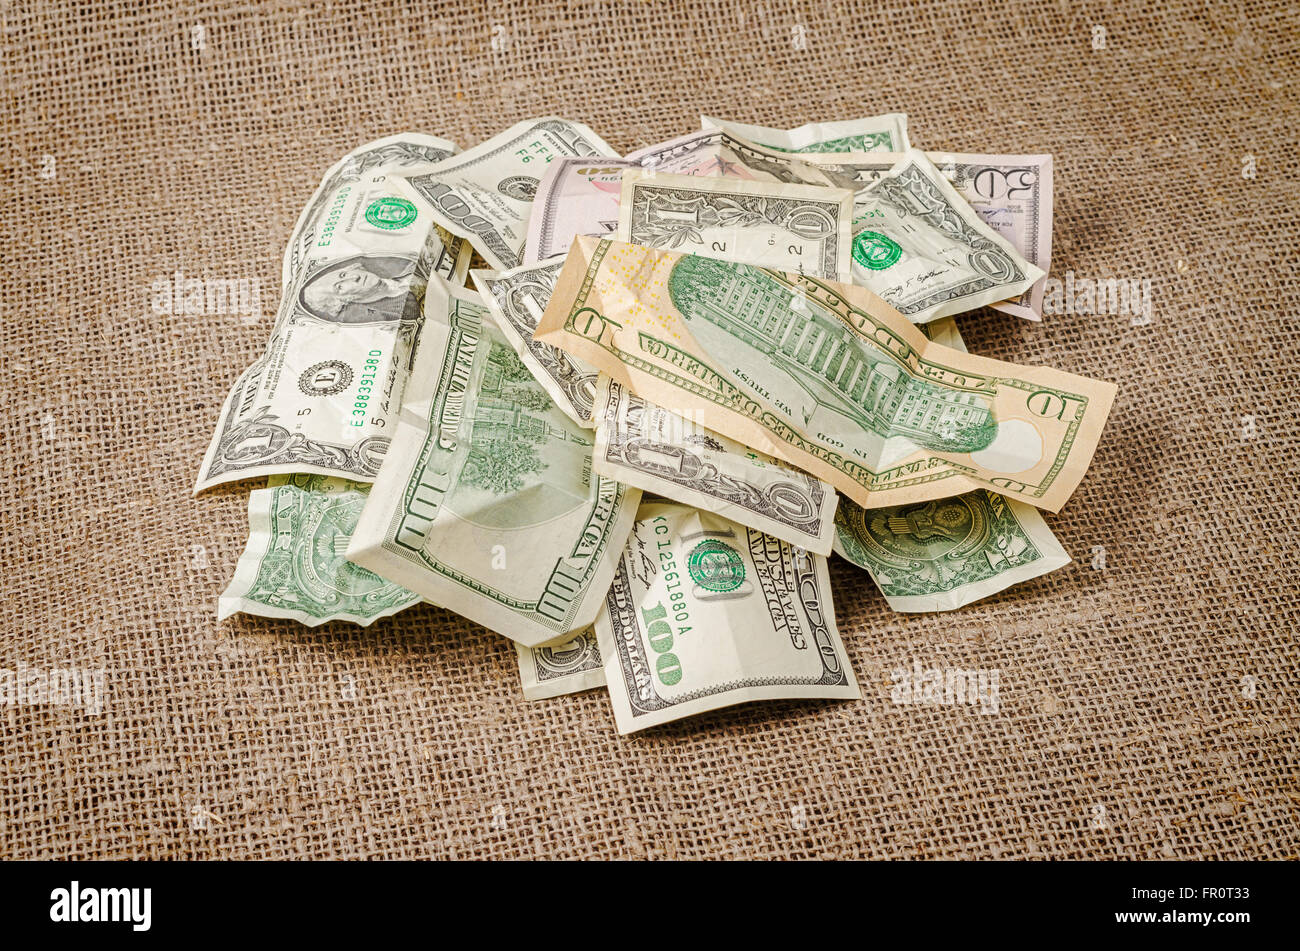 Pile of US dollar banknotes crumpled on rustic jute background - Stock Image